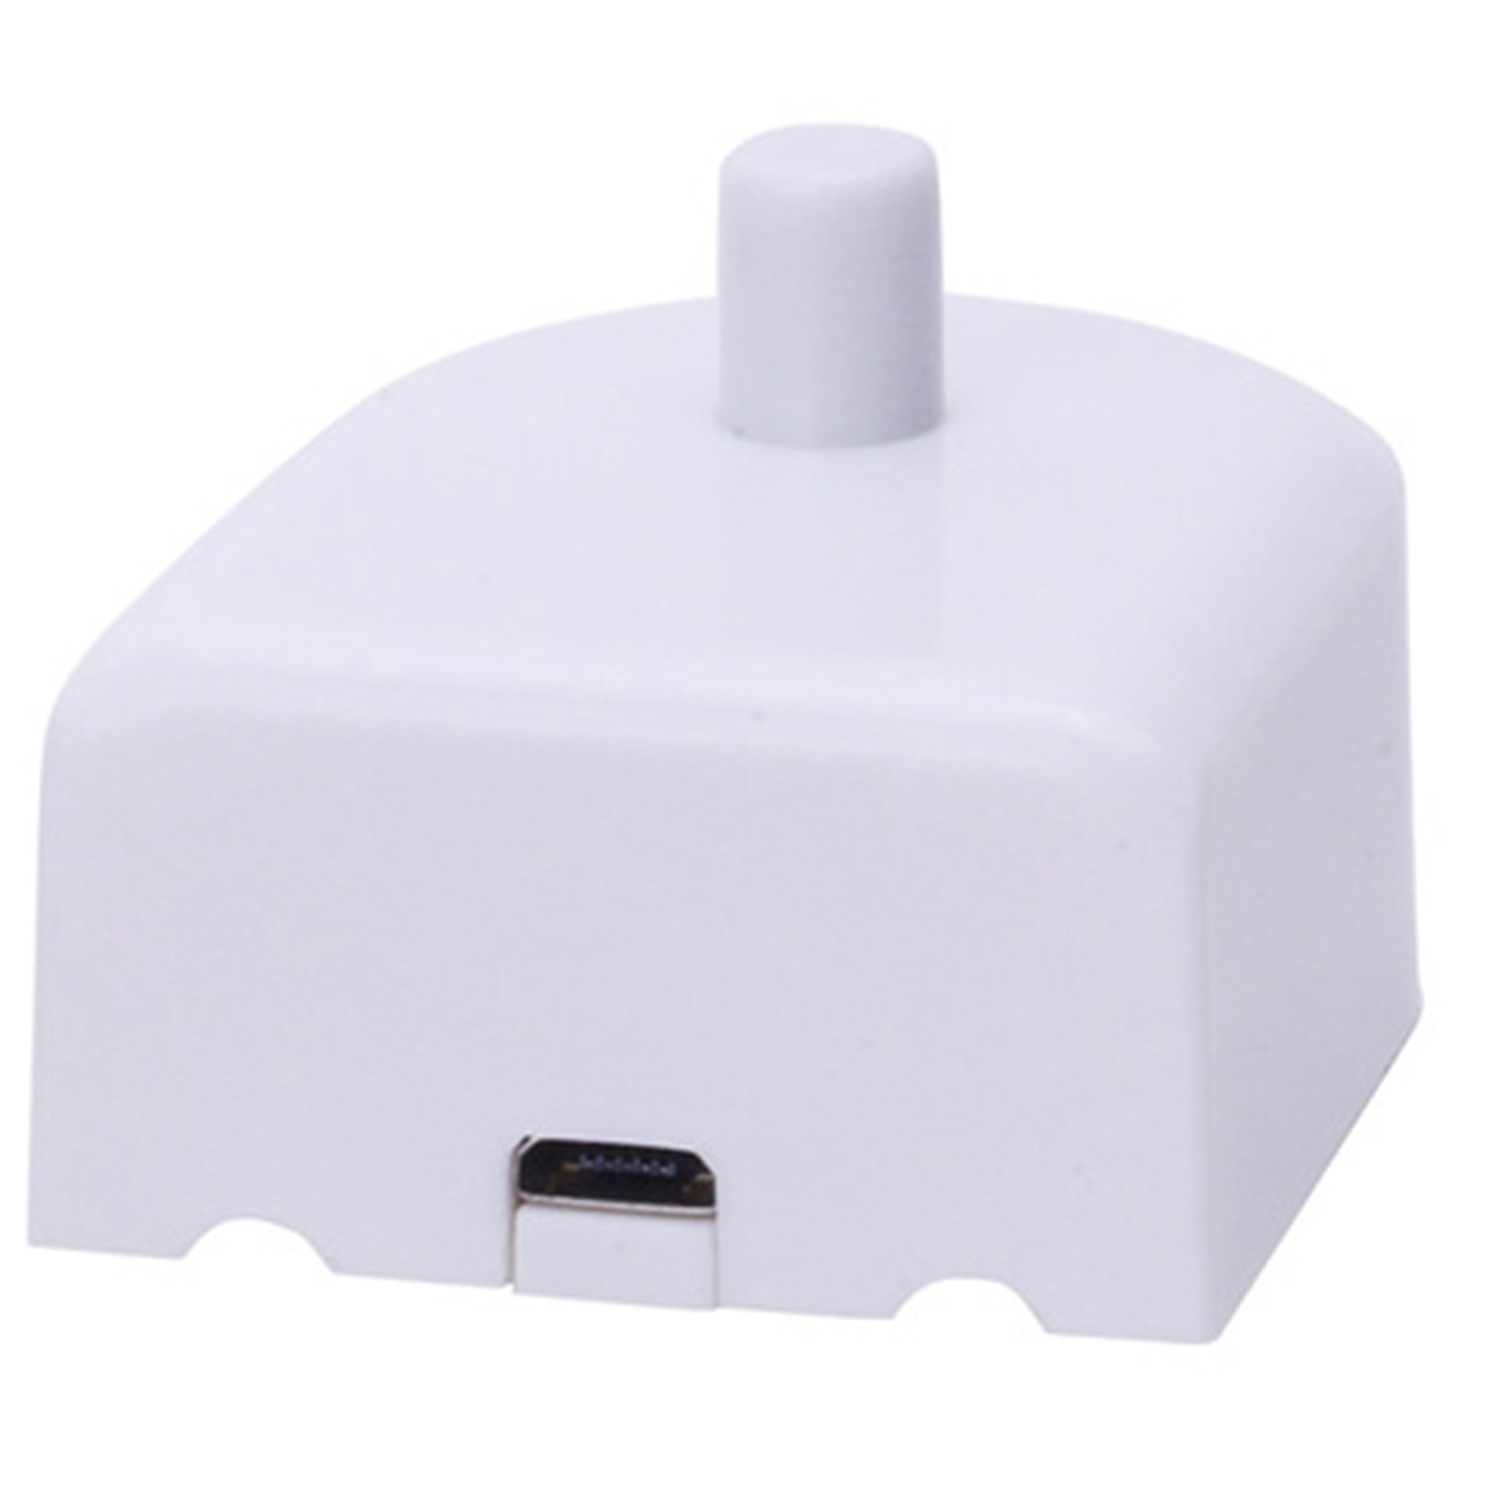 Electric Toothbrush Charger Charging Cradle Electric Toothbrush Heads Holder Usb Charger For Oral B D12 D20 D17 D18 D29 D34 Oc in Electric Toothbrushes from Home Appliances